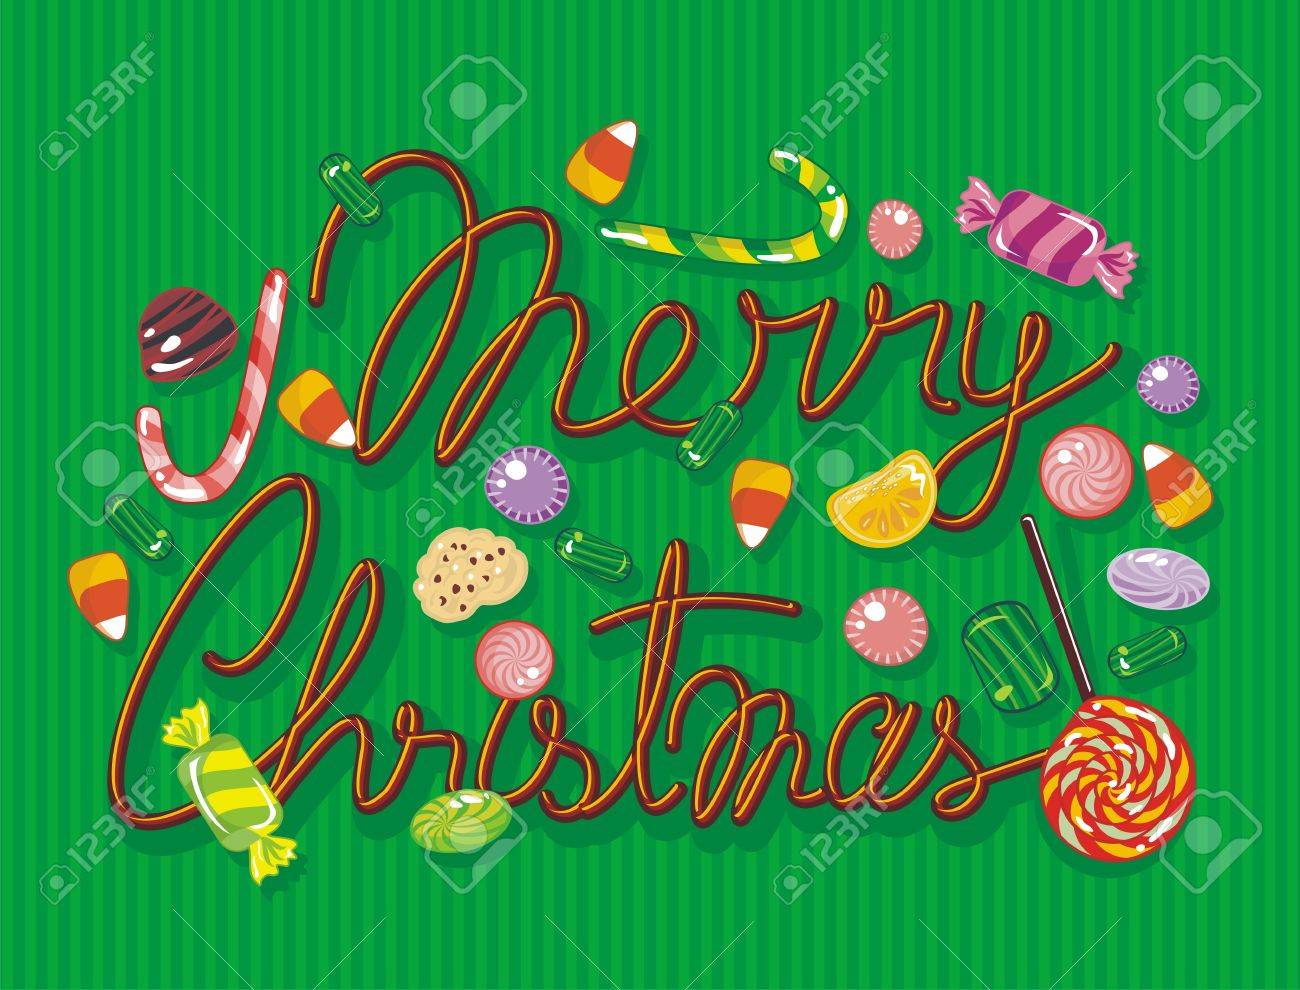 Colorful Christmas illustration with sweets and candies Stock Vector - 15632428